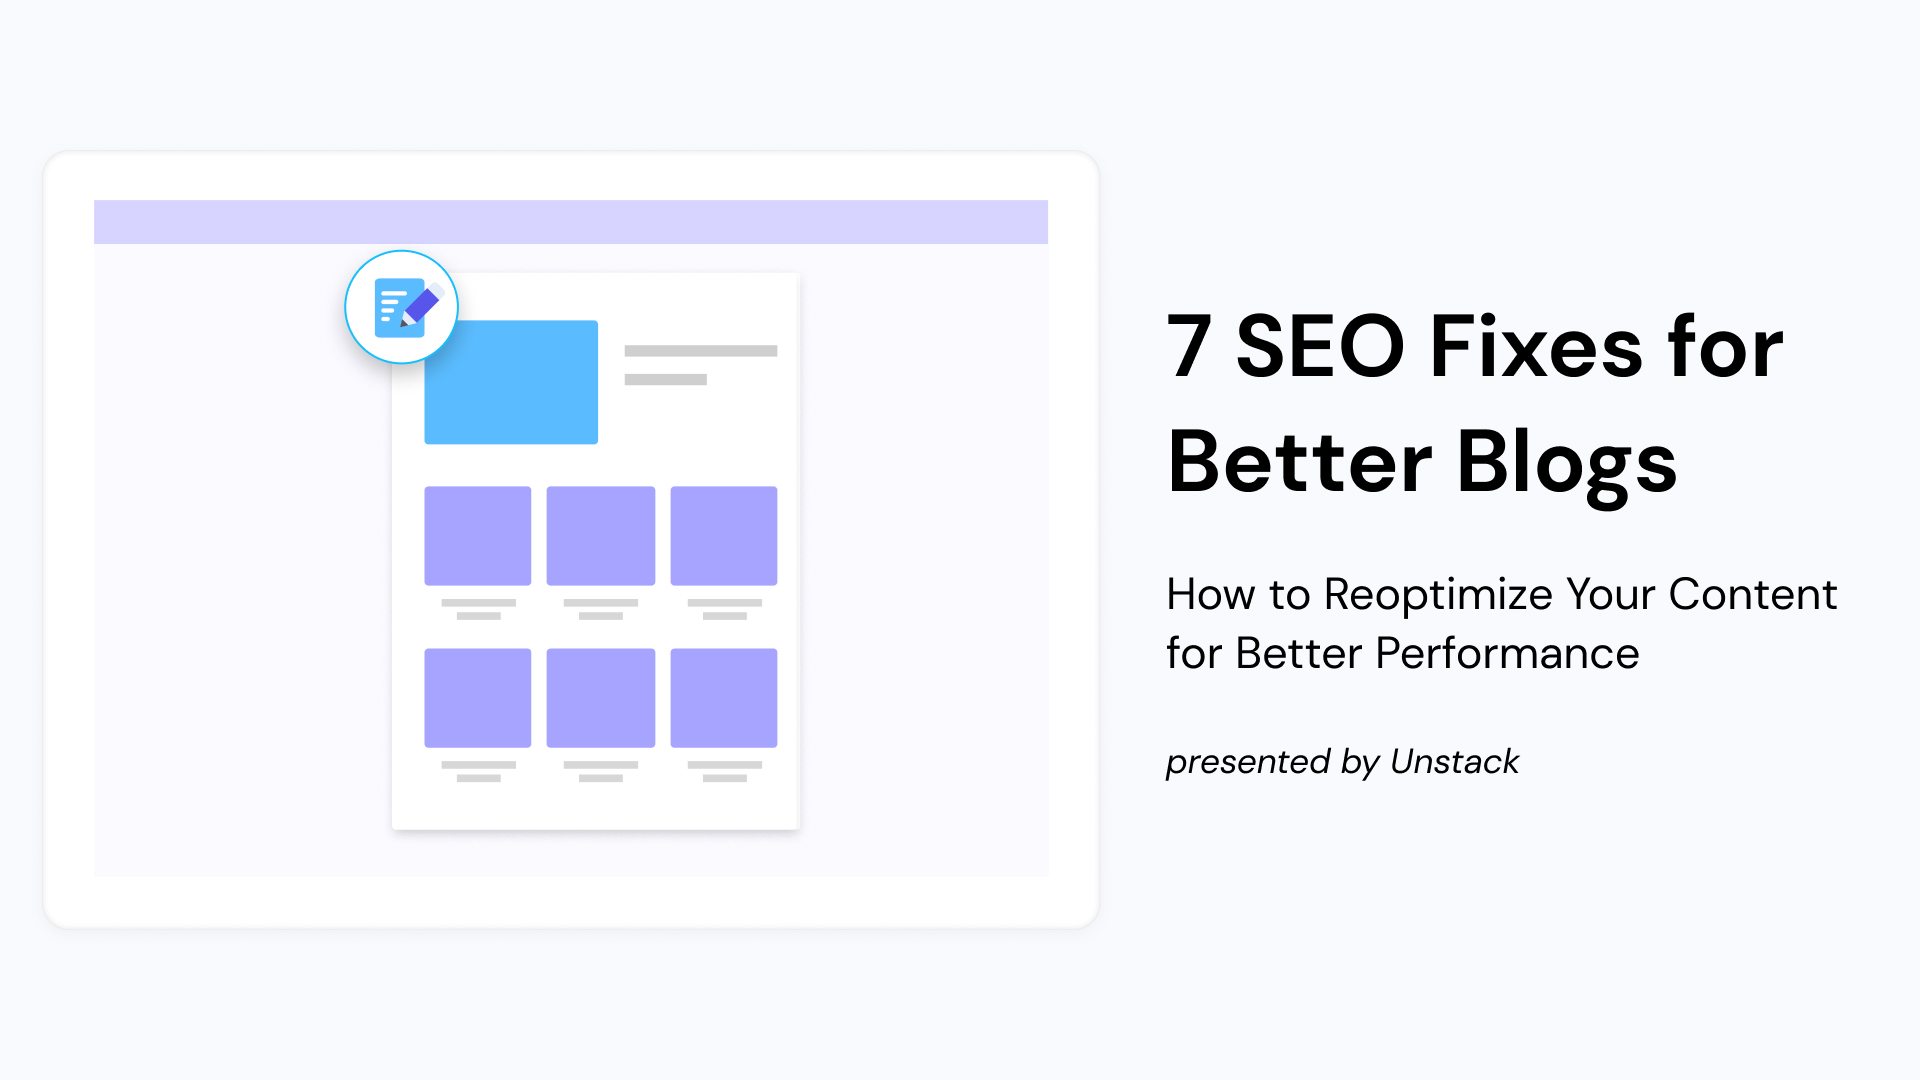 7 SEO Fixes for Better Blogs